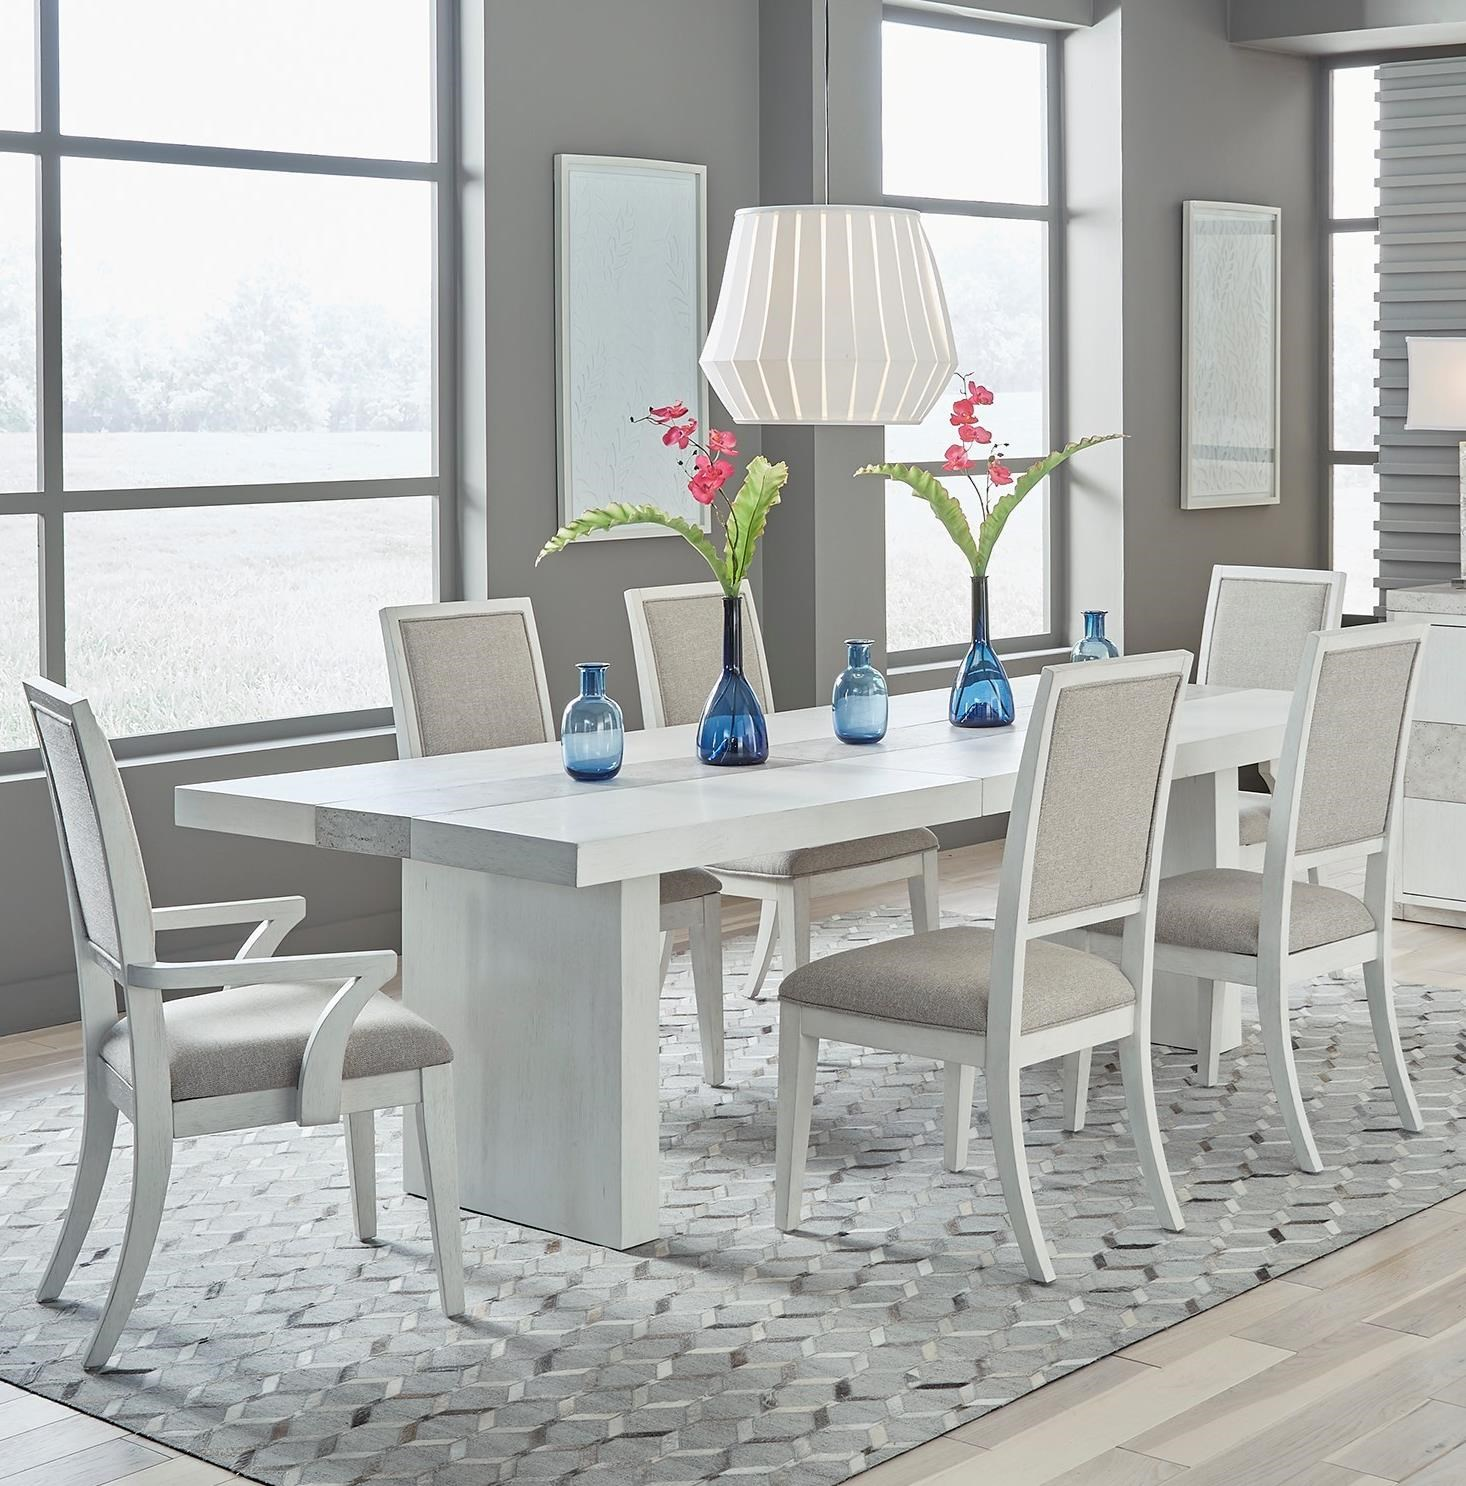 Mirage - 946 7-Piece Dining Set  by Libby at Walker's Furniture